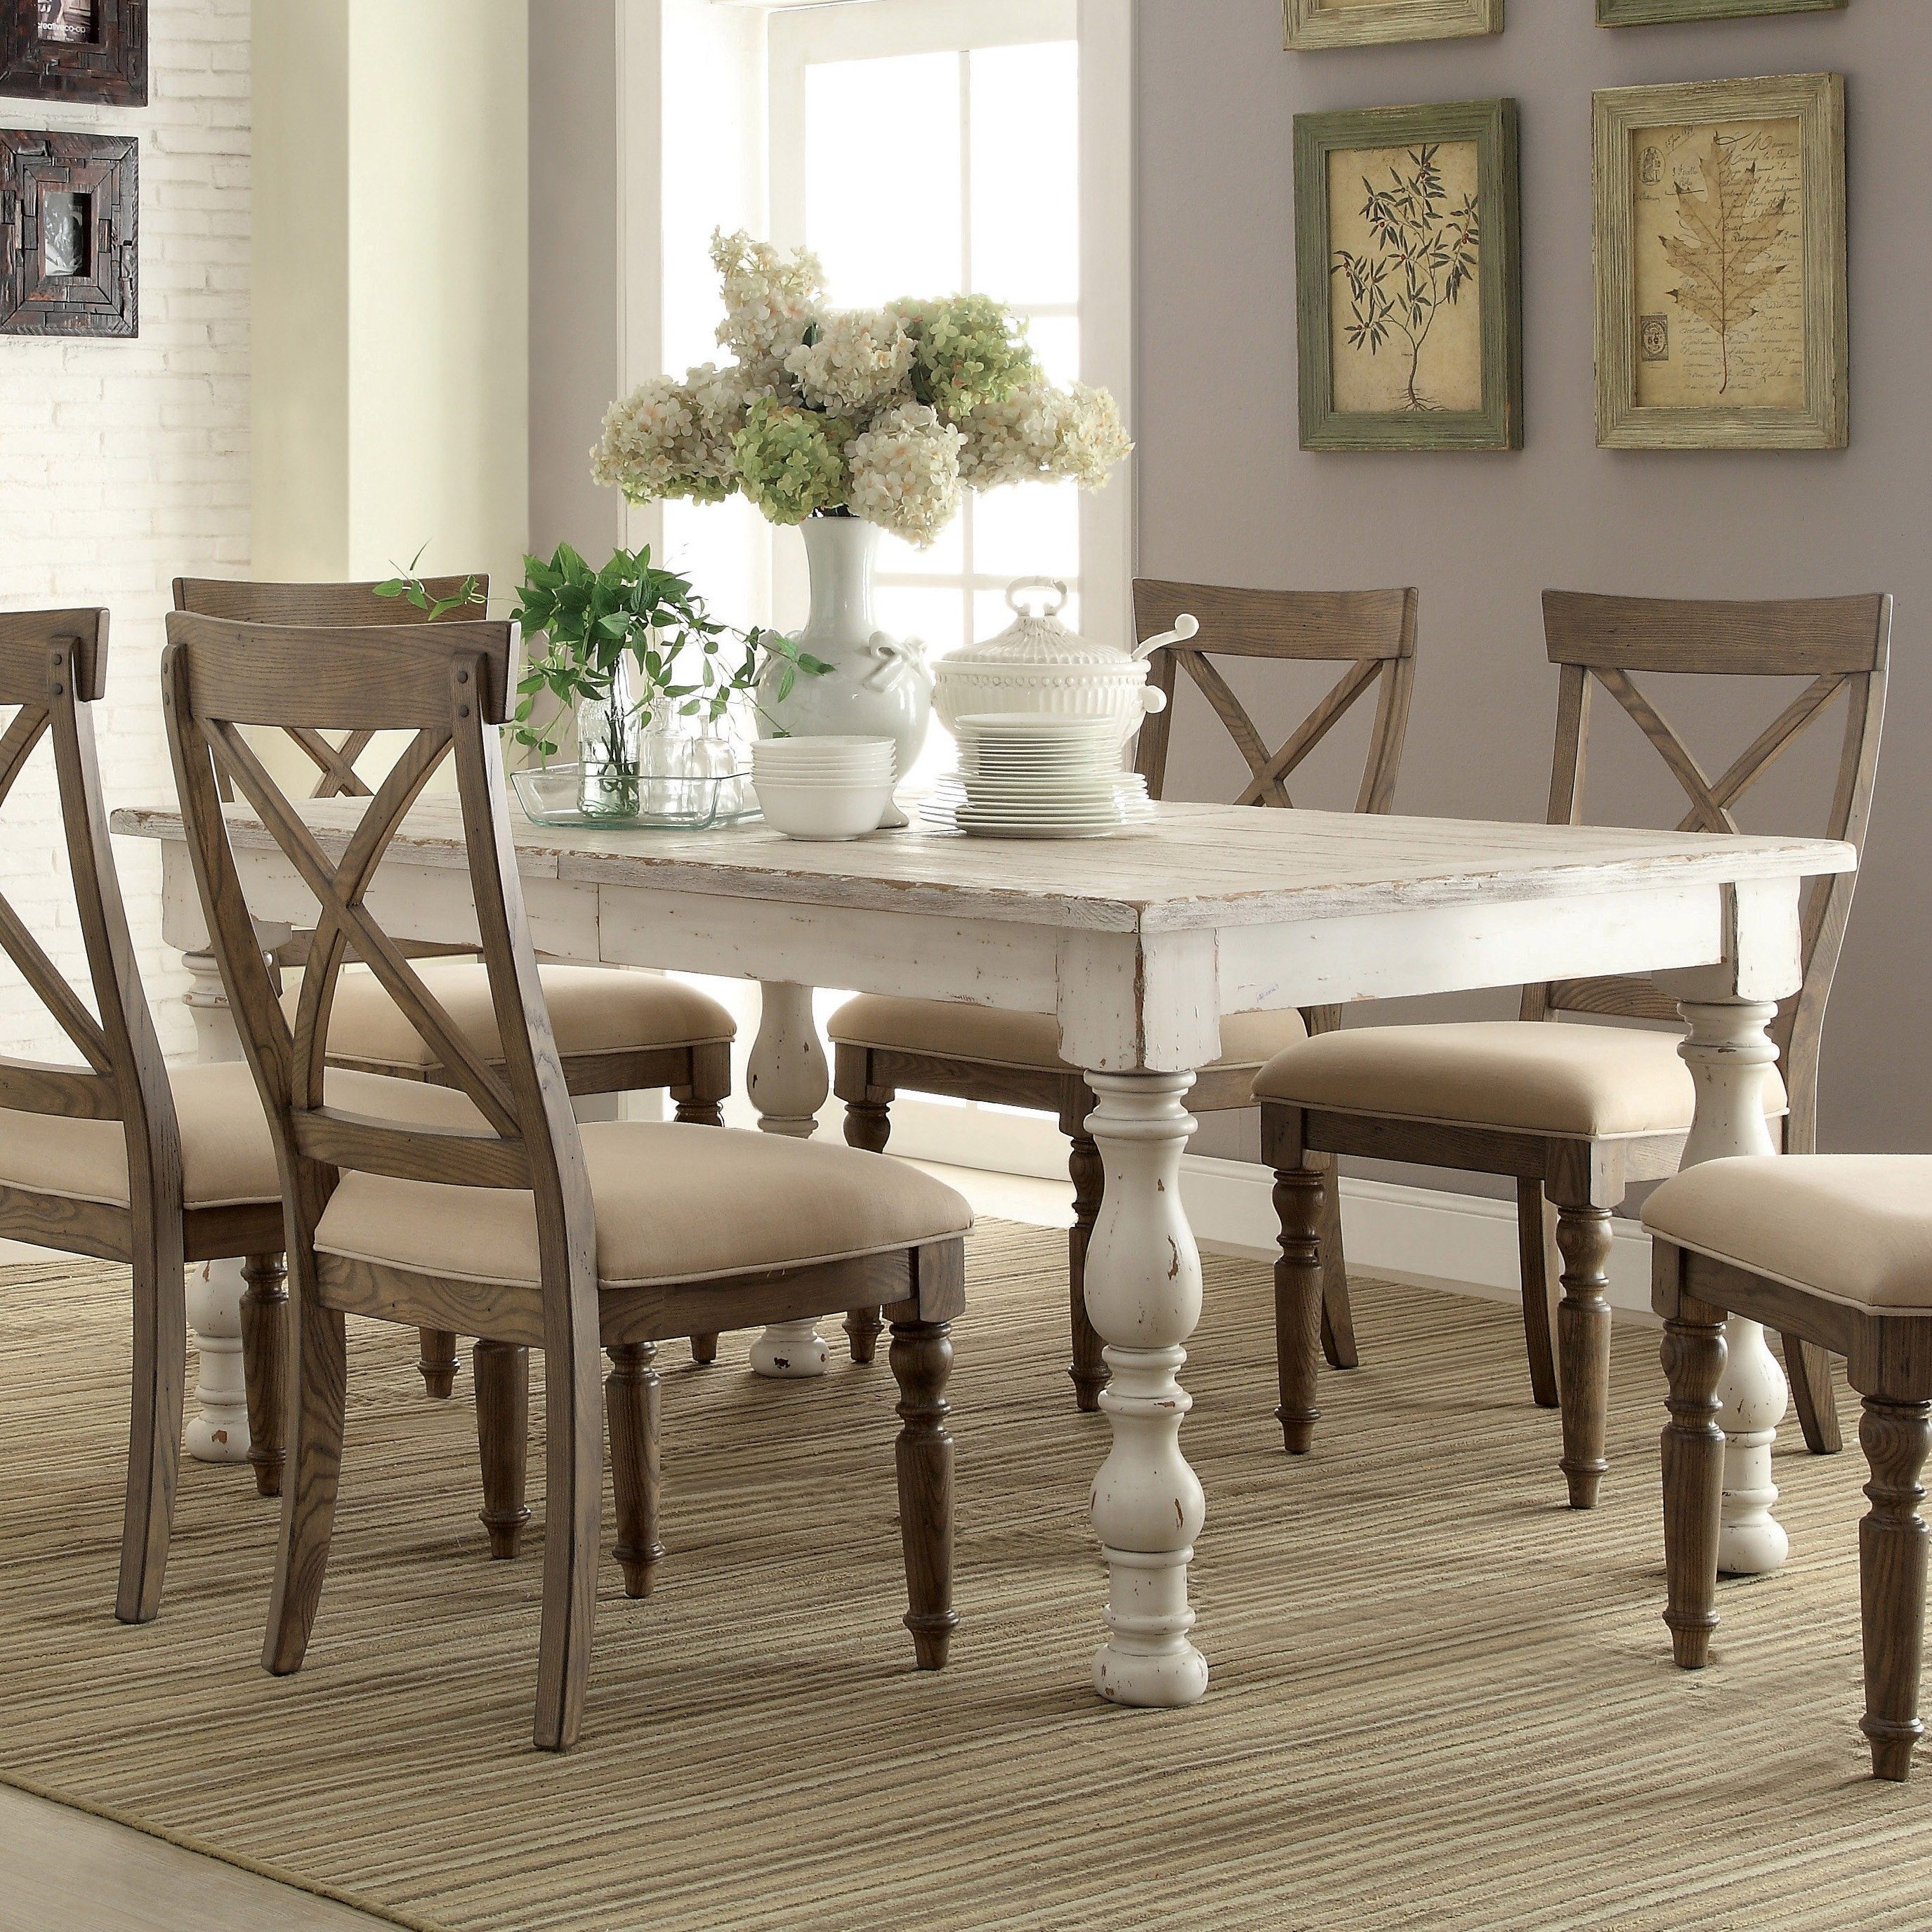 Dining Room Table With Chairs And Bench: Aberdeen Wood Rectangular Dining Table And Chairs In